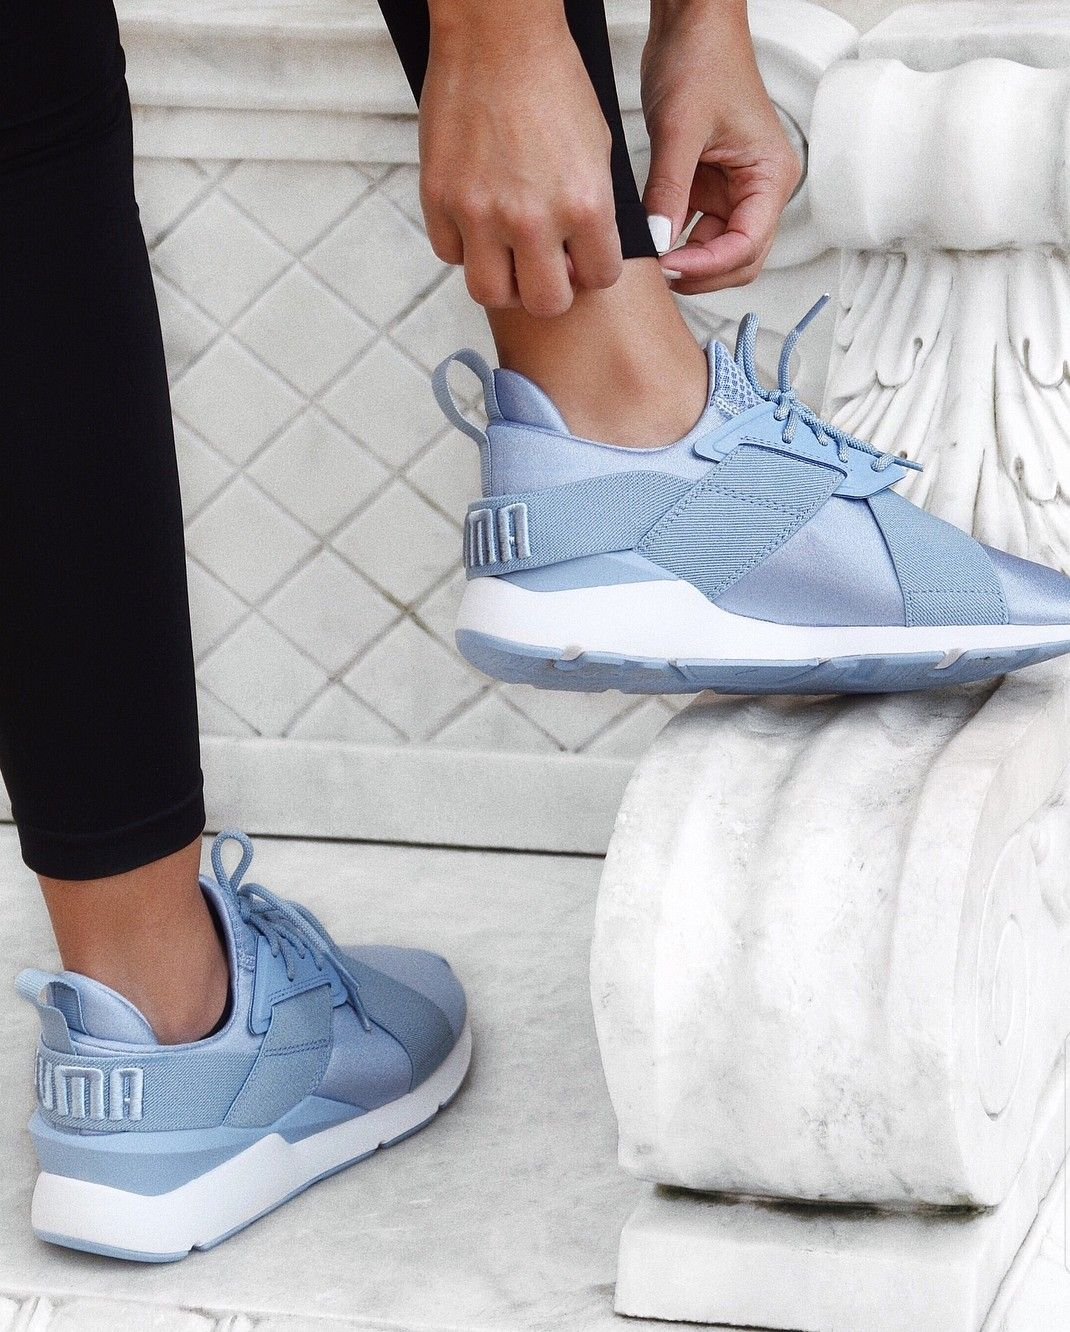 Puma Muse blue sneakers | Blue sneakers, Shoes sneakers, Shoes